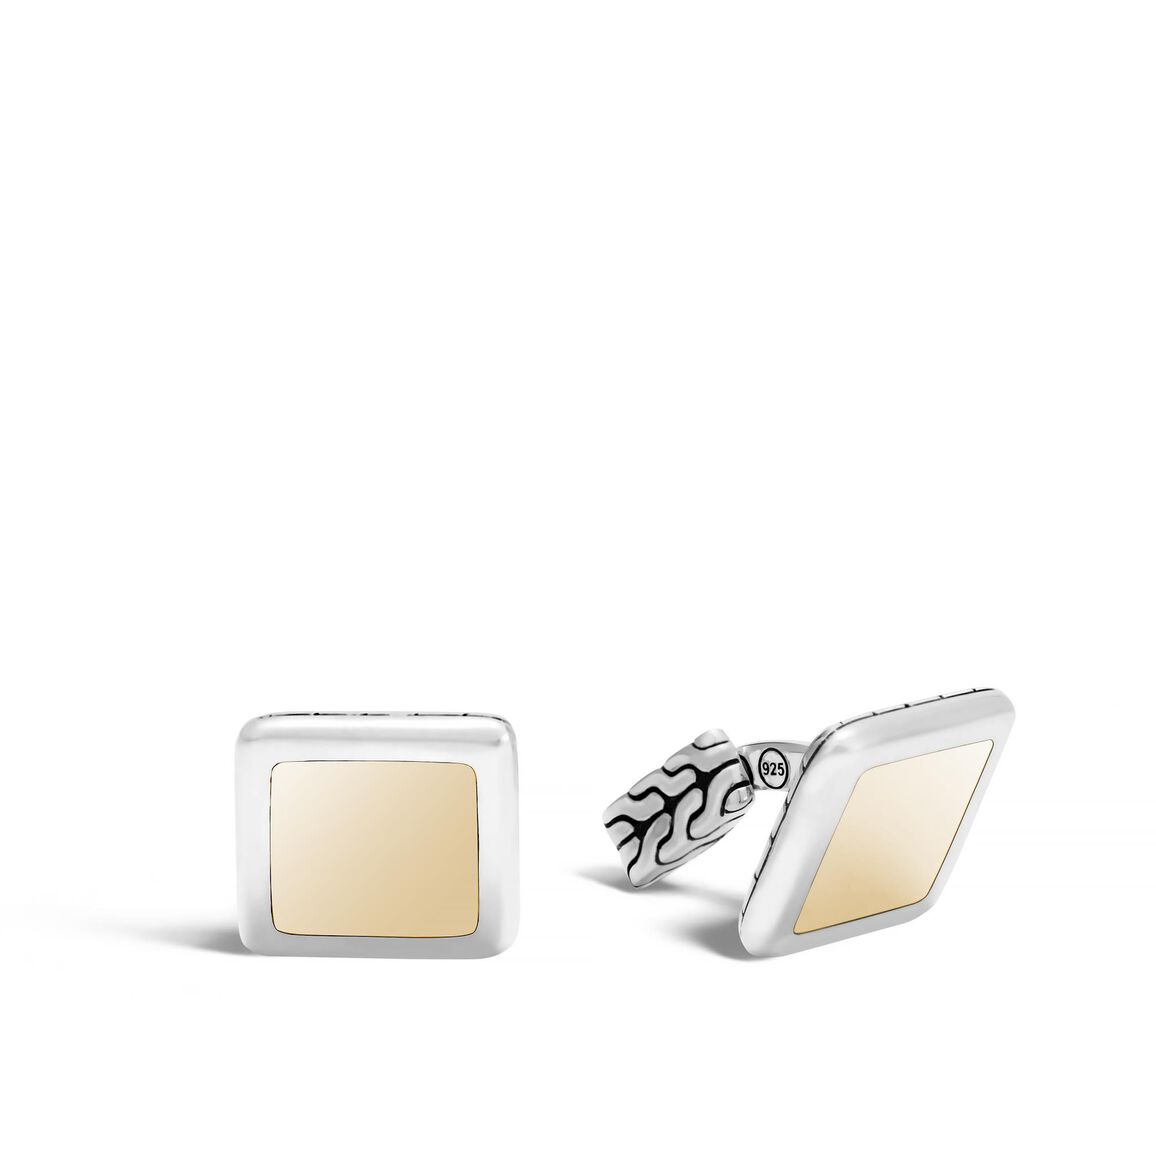 Classic Chain Square Cufflinks in Silver and 18K Gold